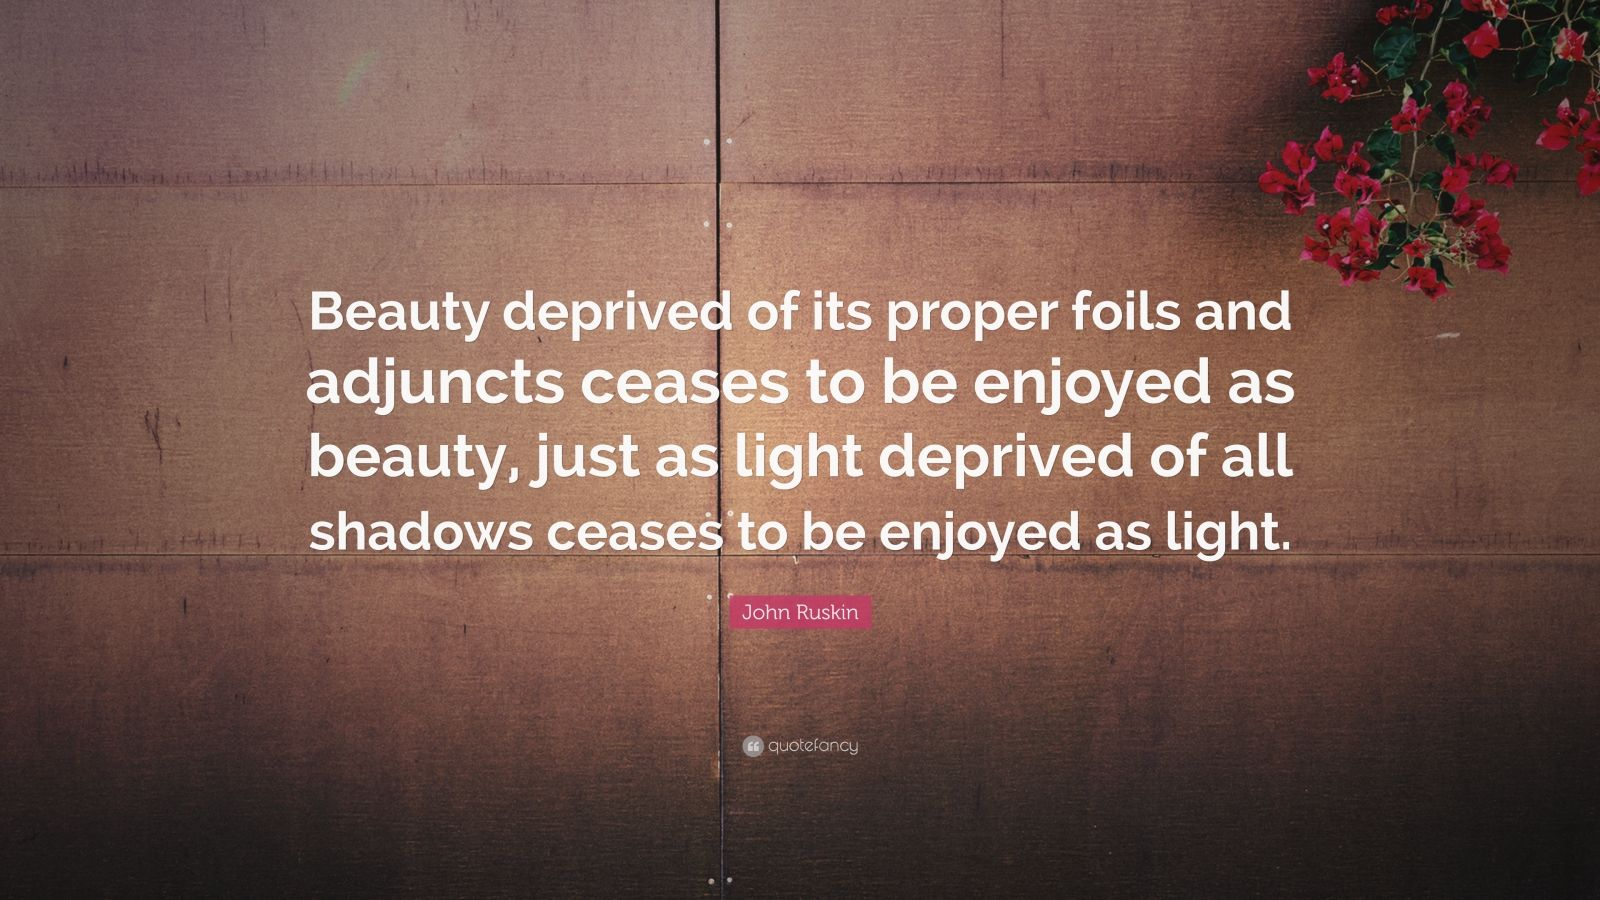 """John Ruskin Quote: """"Beauty deprived of its proper foils and adjuncts ceases to be enjoyed as beauty, just as light deprived of all shadows ceases to be enjoyed as light."""""""